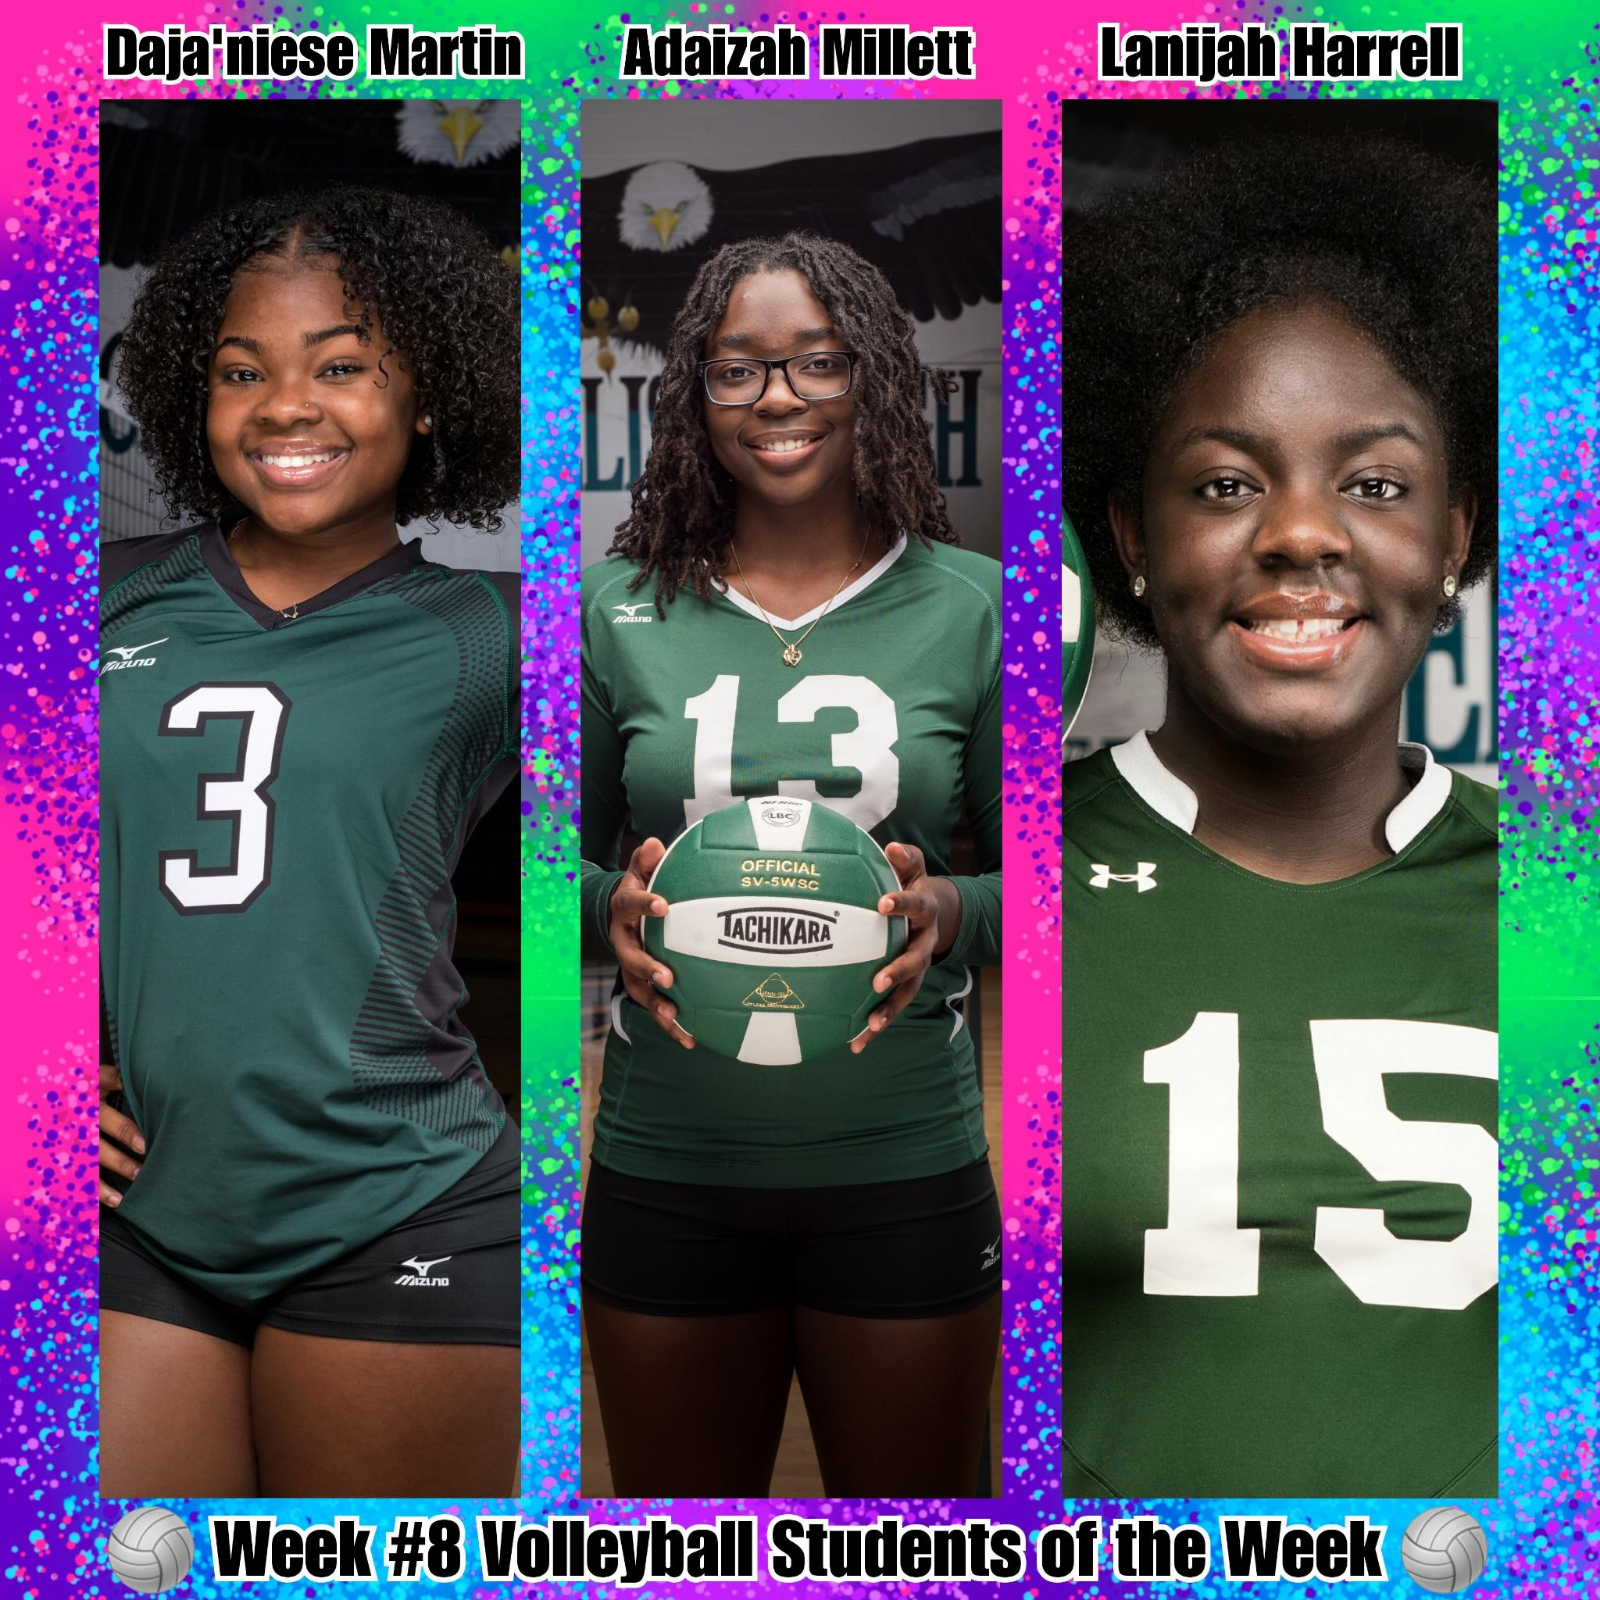 Week #8 Volleyball STUDENTS of the Week